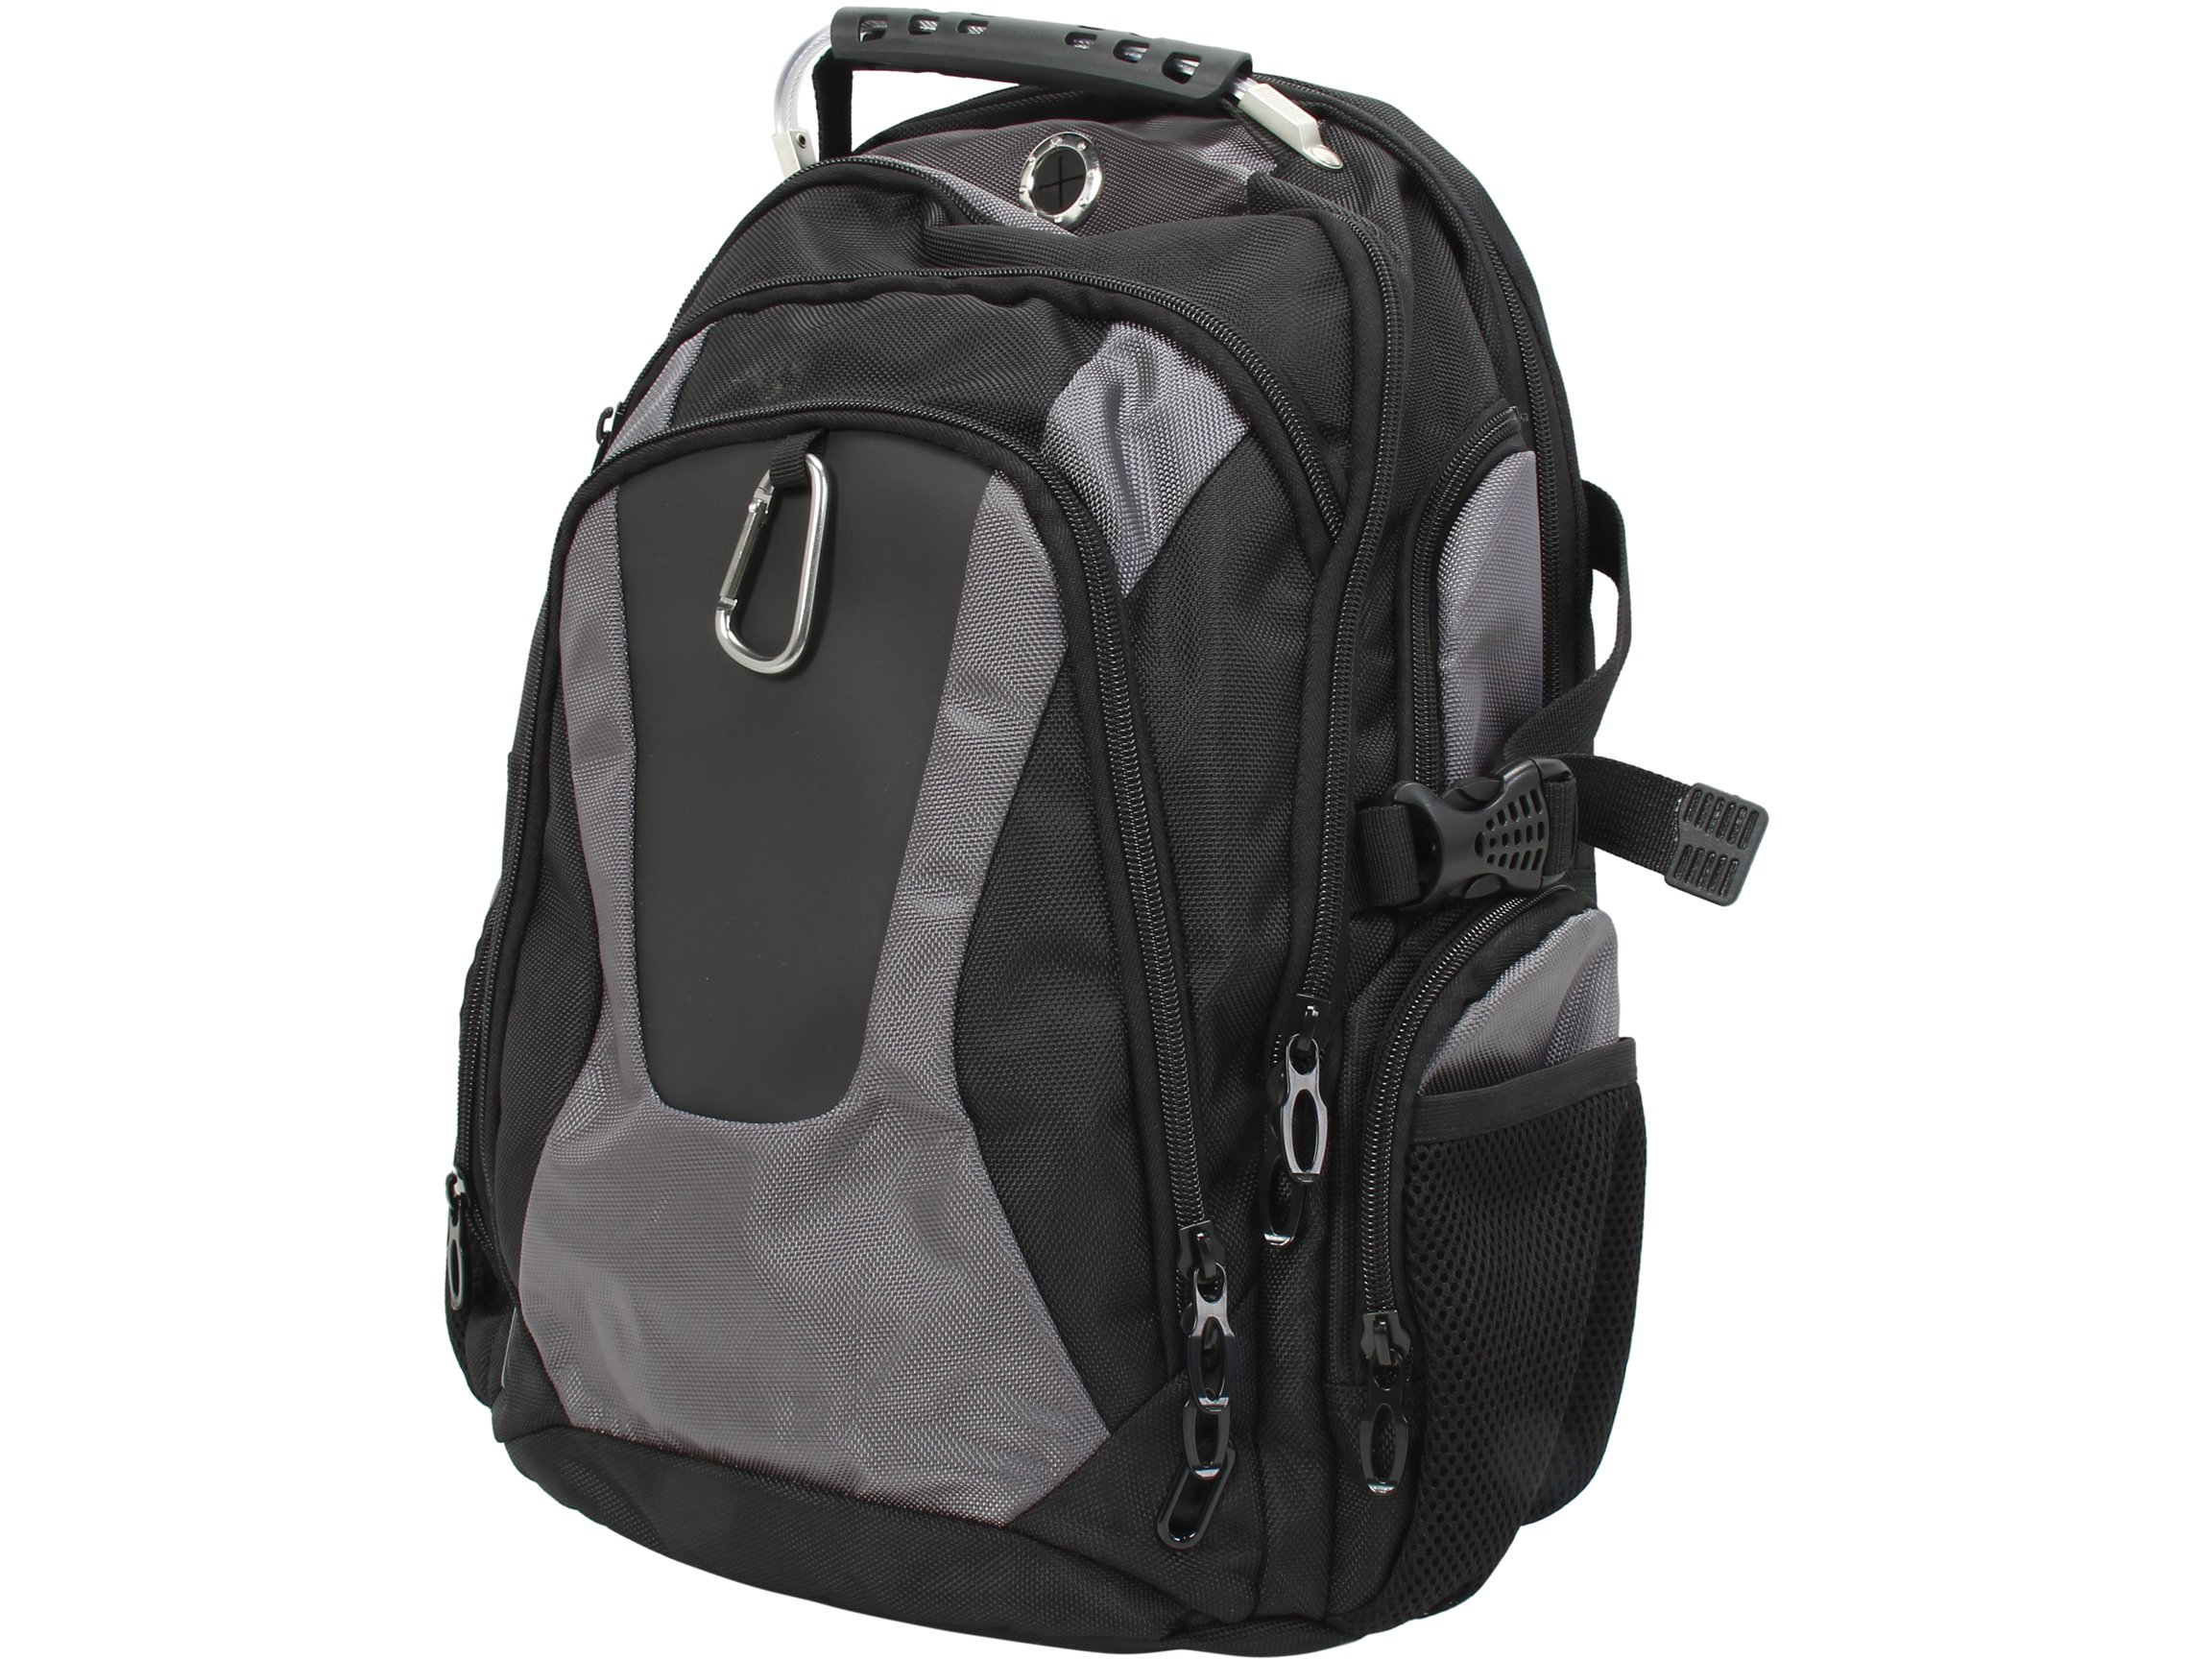 Rosewill 15.6-Inch Notebook Computer Backpack (RMBP-11001)